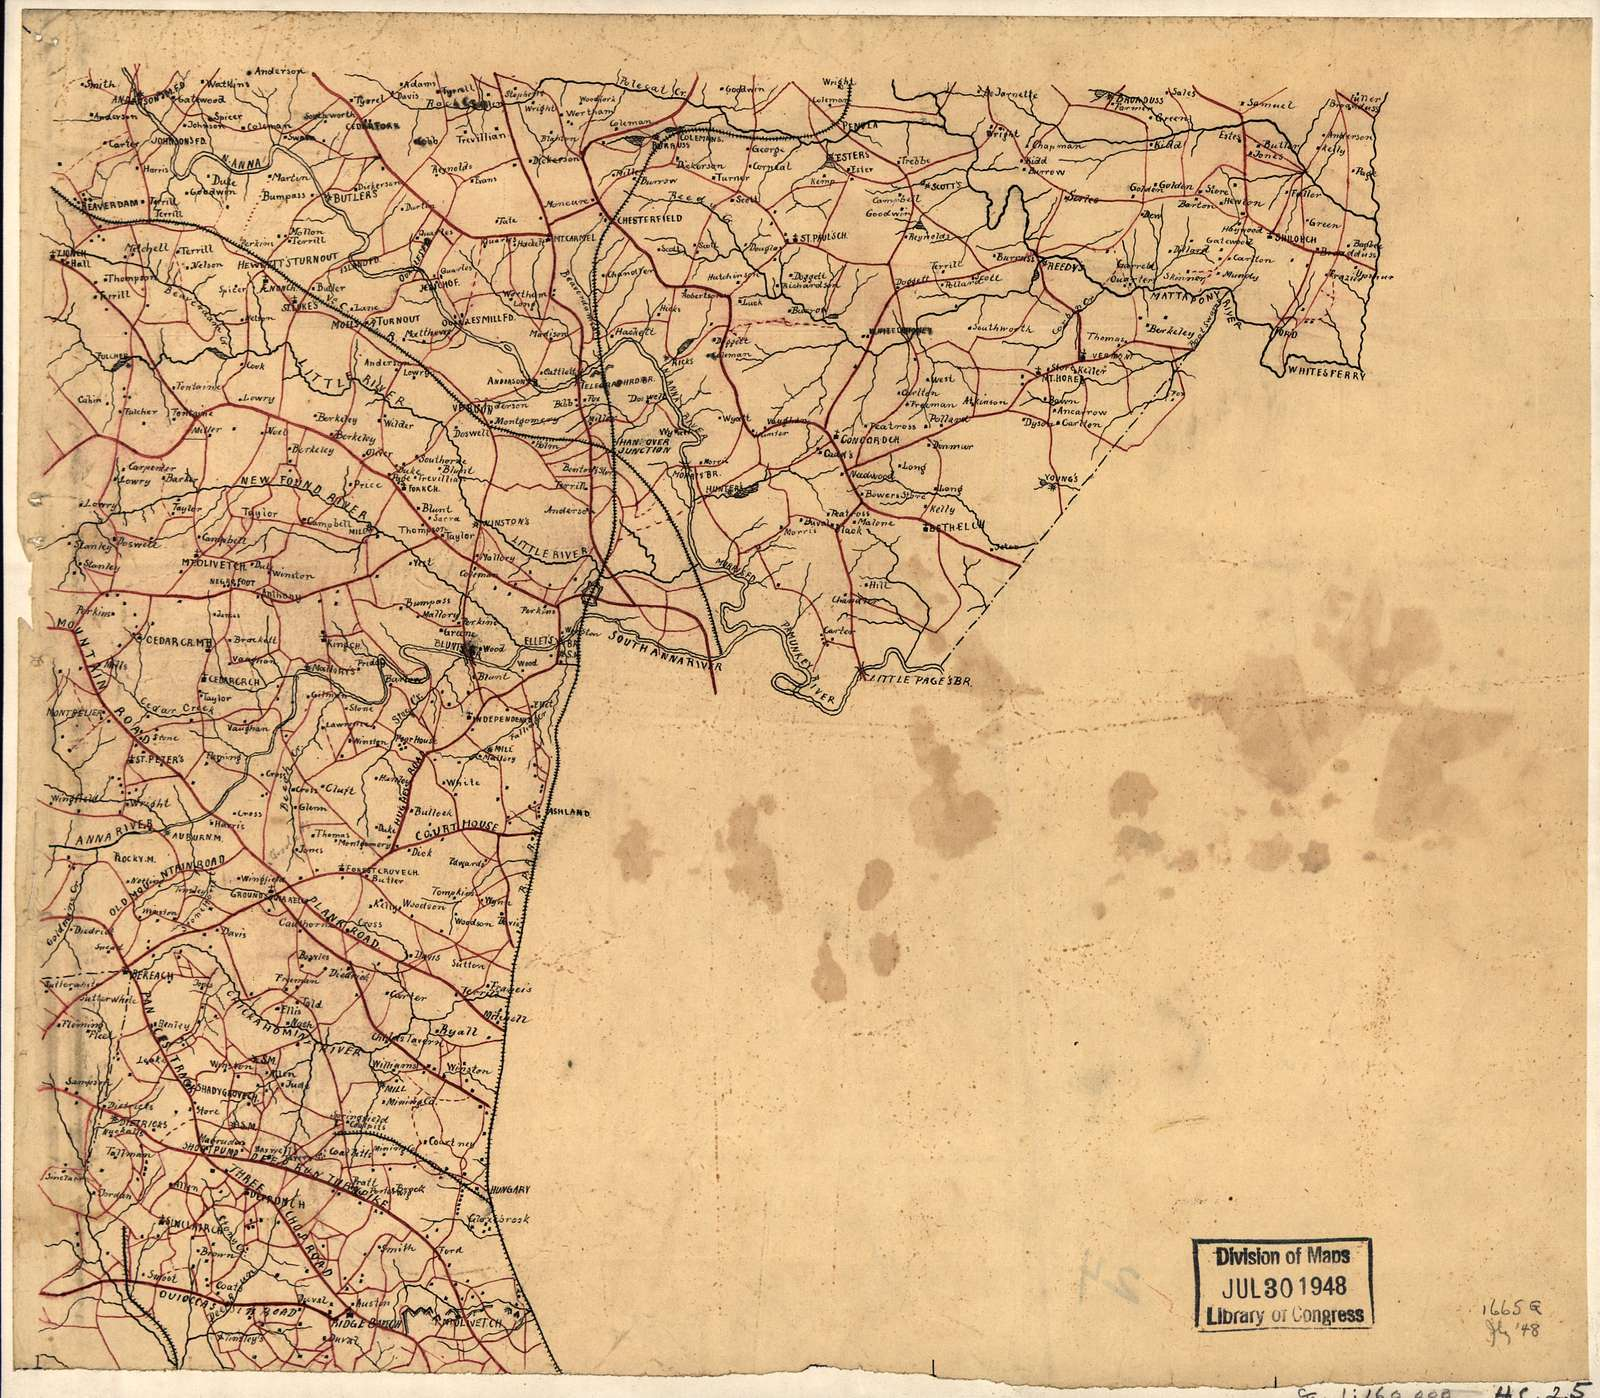 [Map of parts of Caroline, Hanover, and Henrico counties, Va., west of the Mattaponi River and the Richmond, Fredericksburg, and Potomac Railroad].